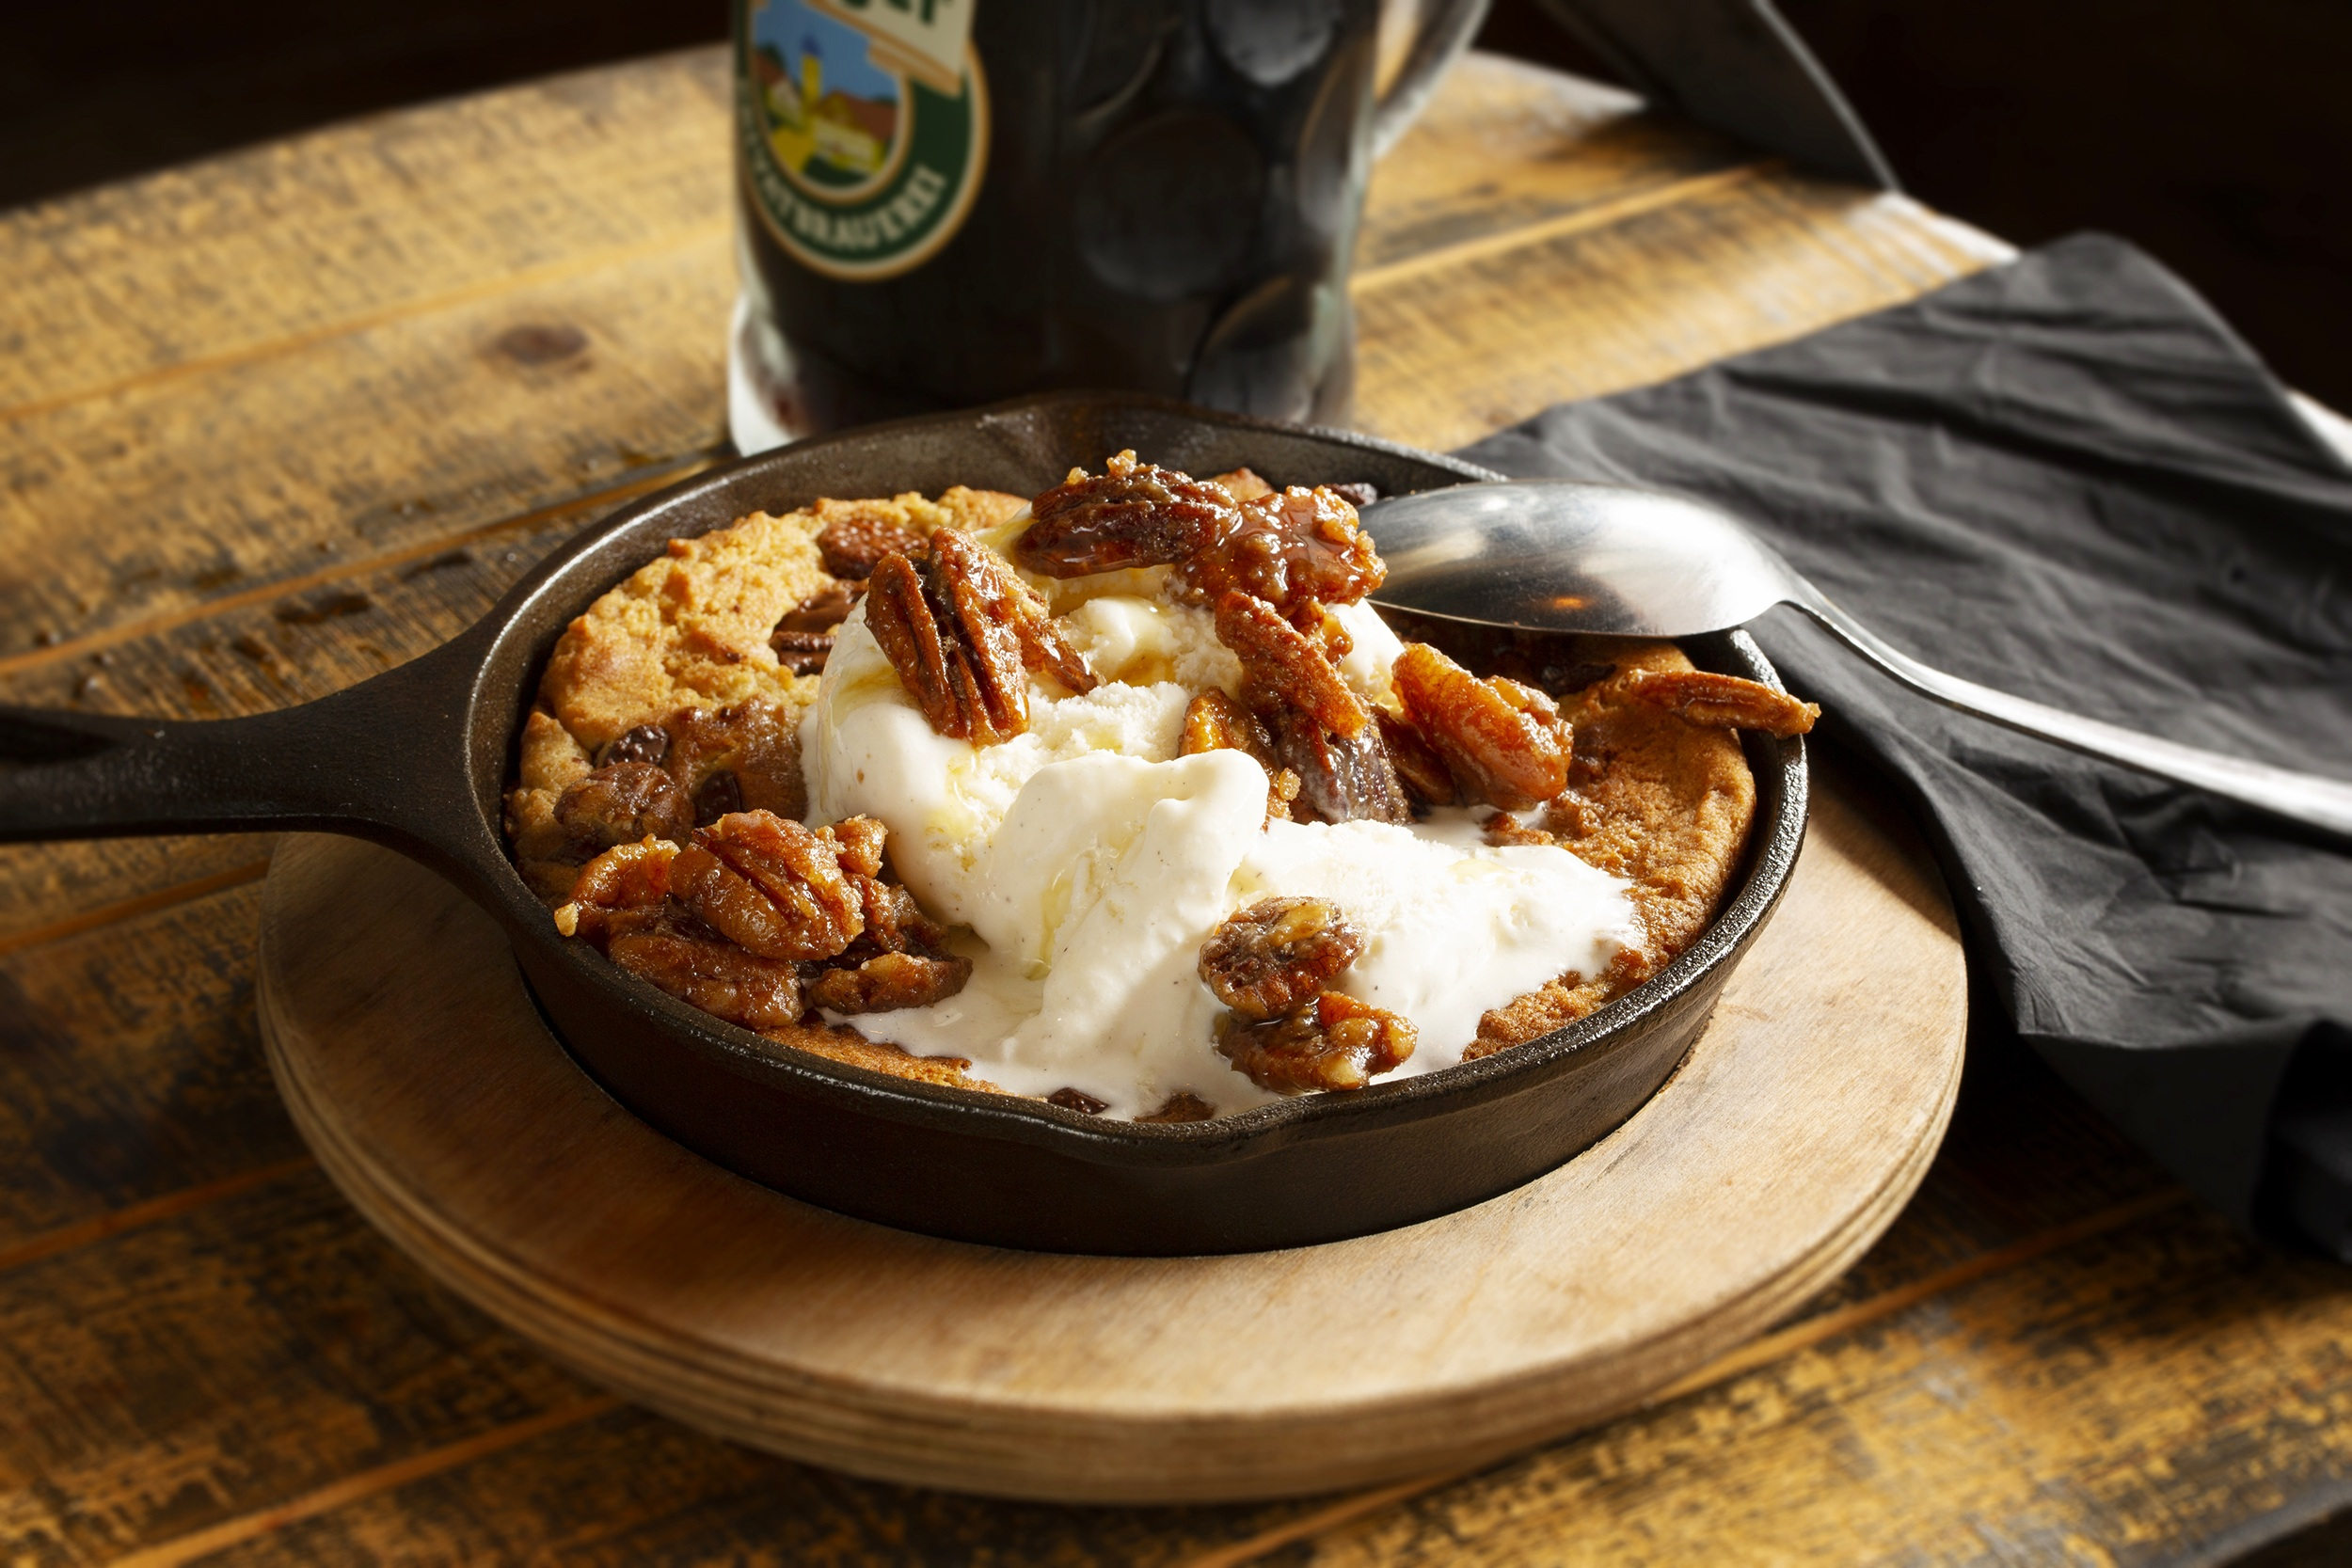 Prost+Kitchen+Cast+Iron+Cookie-Baked+to+order+chocolate+chip+cookie+skillet+topped+with+vanilla+ice+cream%2C+candied+pecans+and+honey+1.jpg